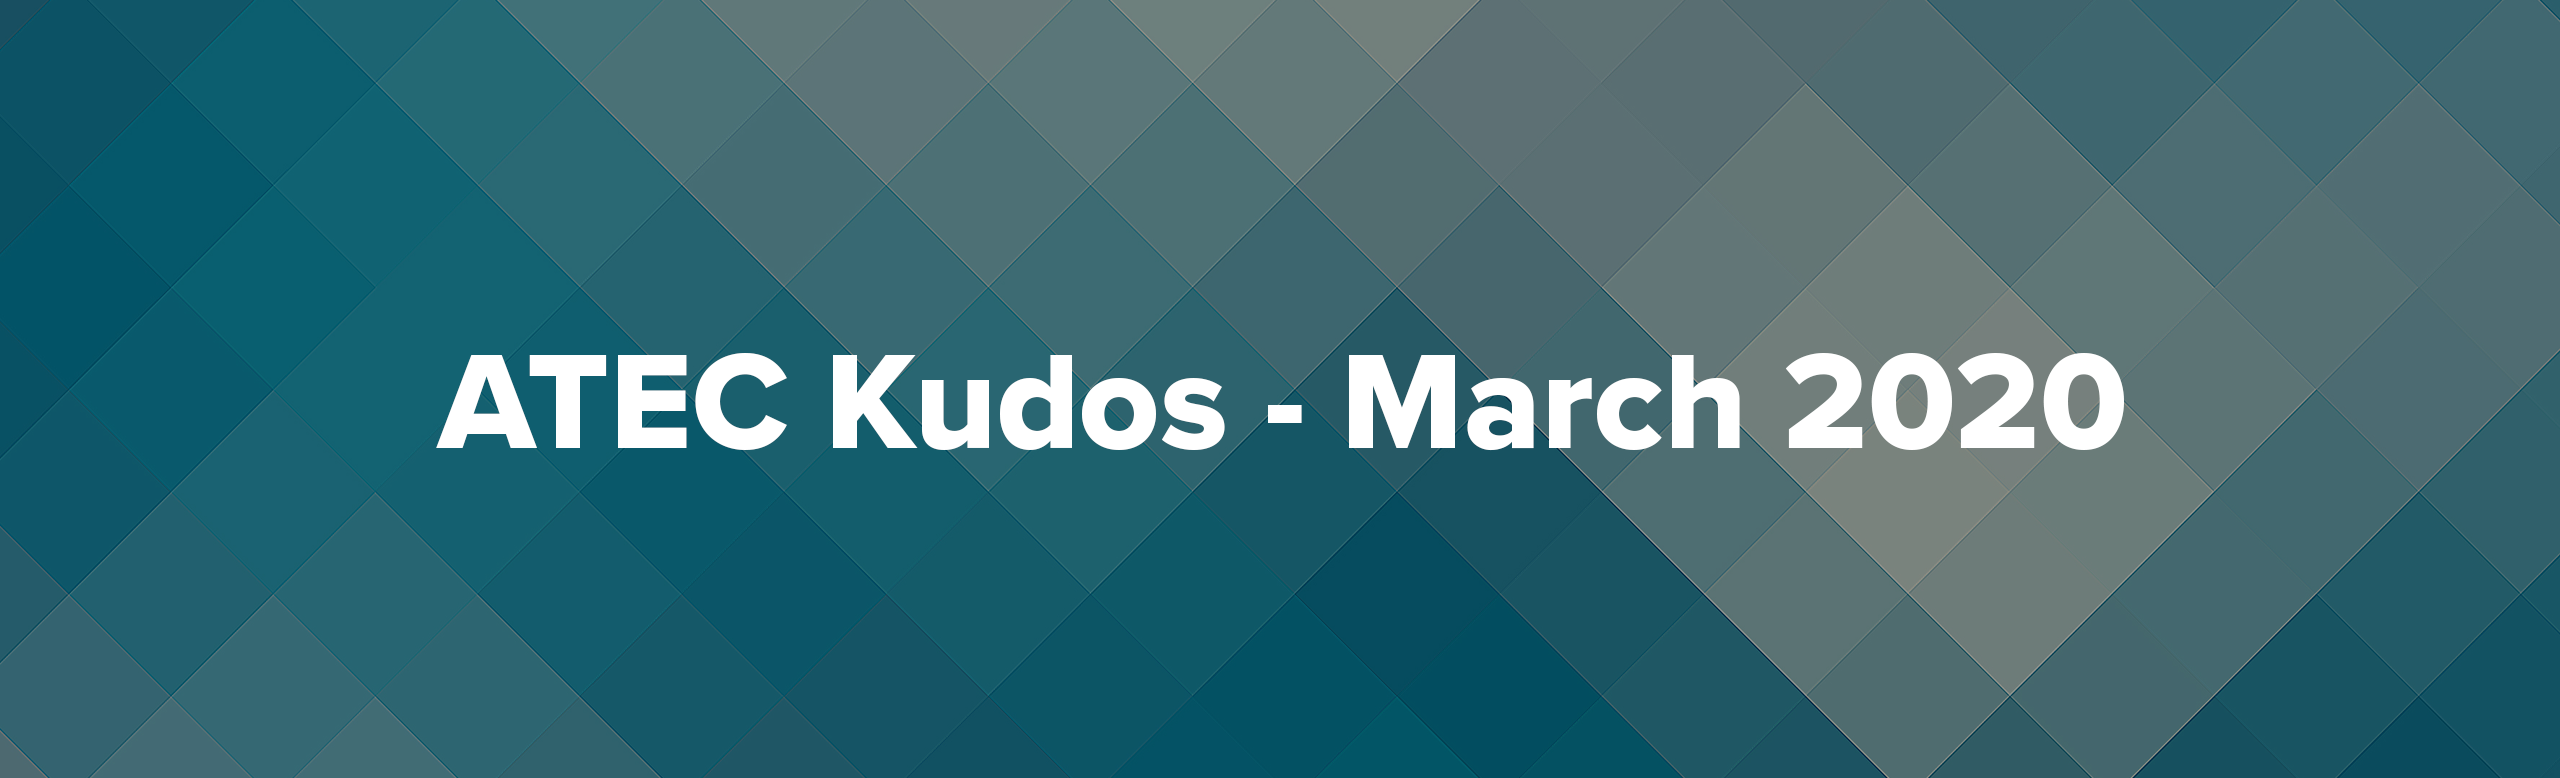 March Kudos Header